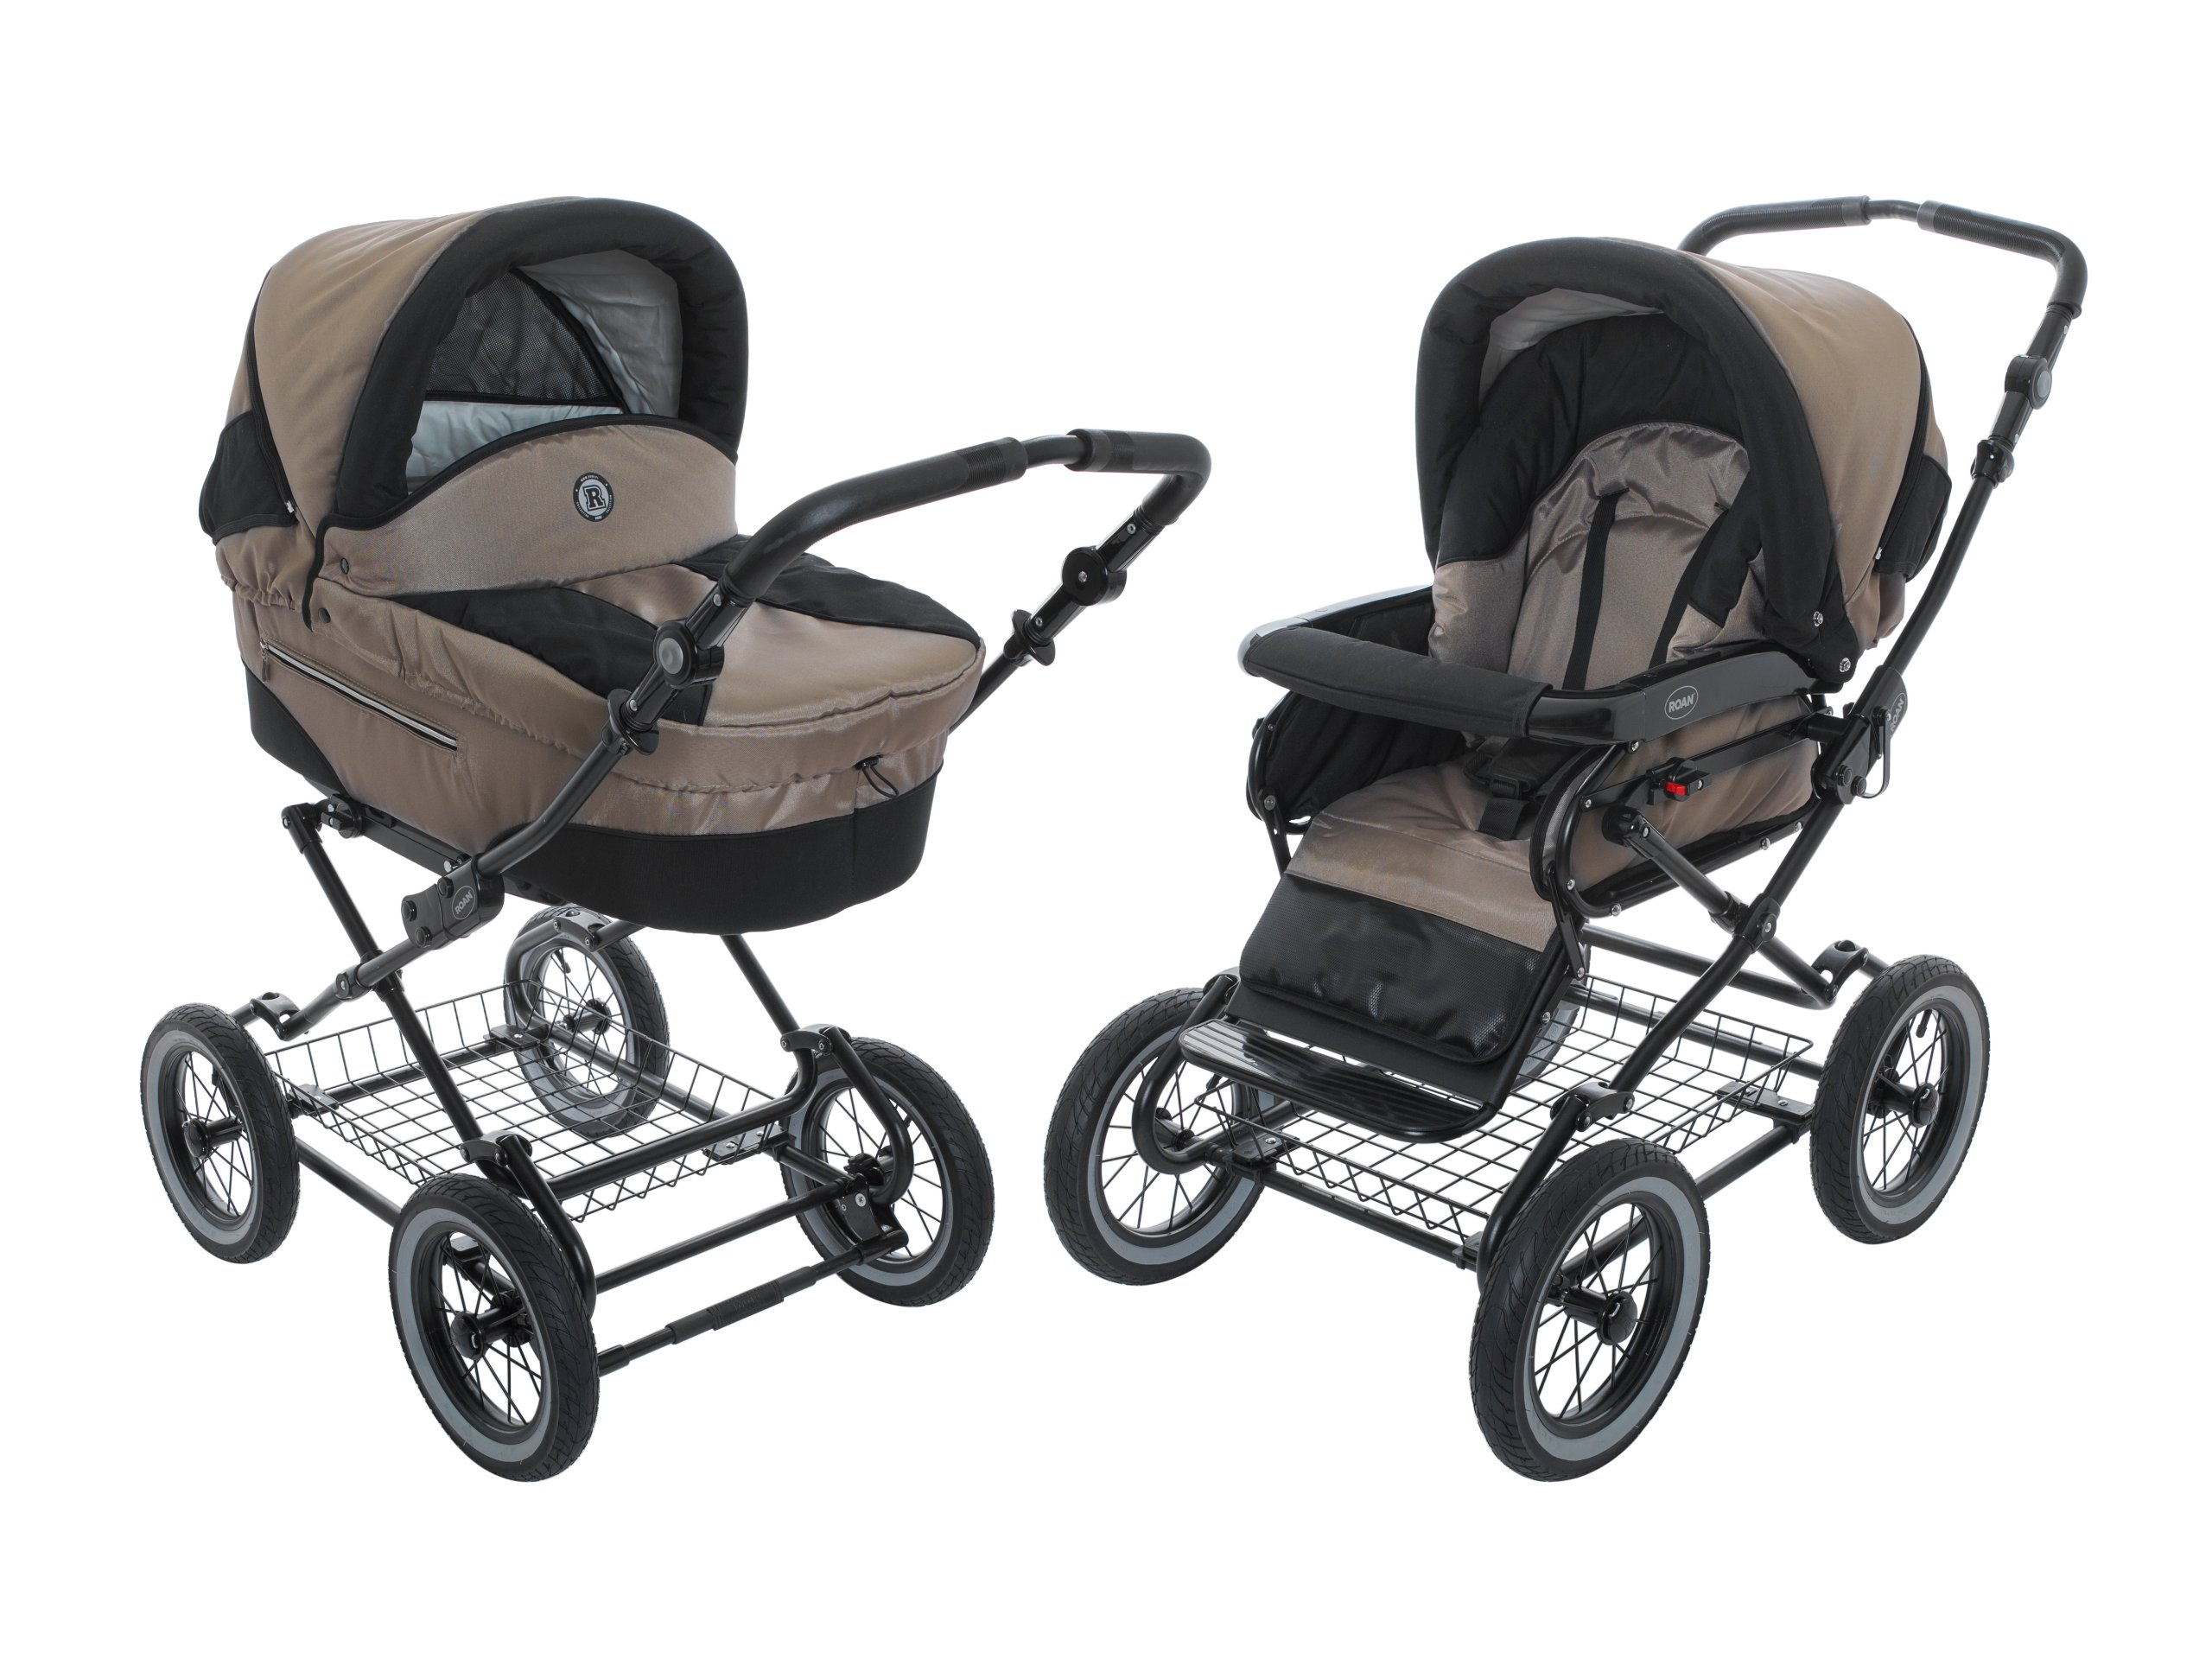 Roan Rocco Classic Pram Stroller 2-in-1 with Bassinet and Seat Unit - Coffee